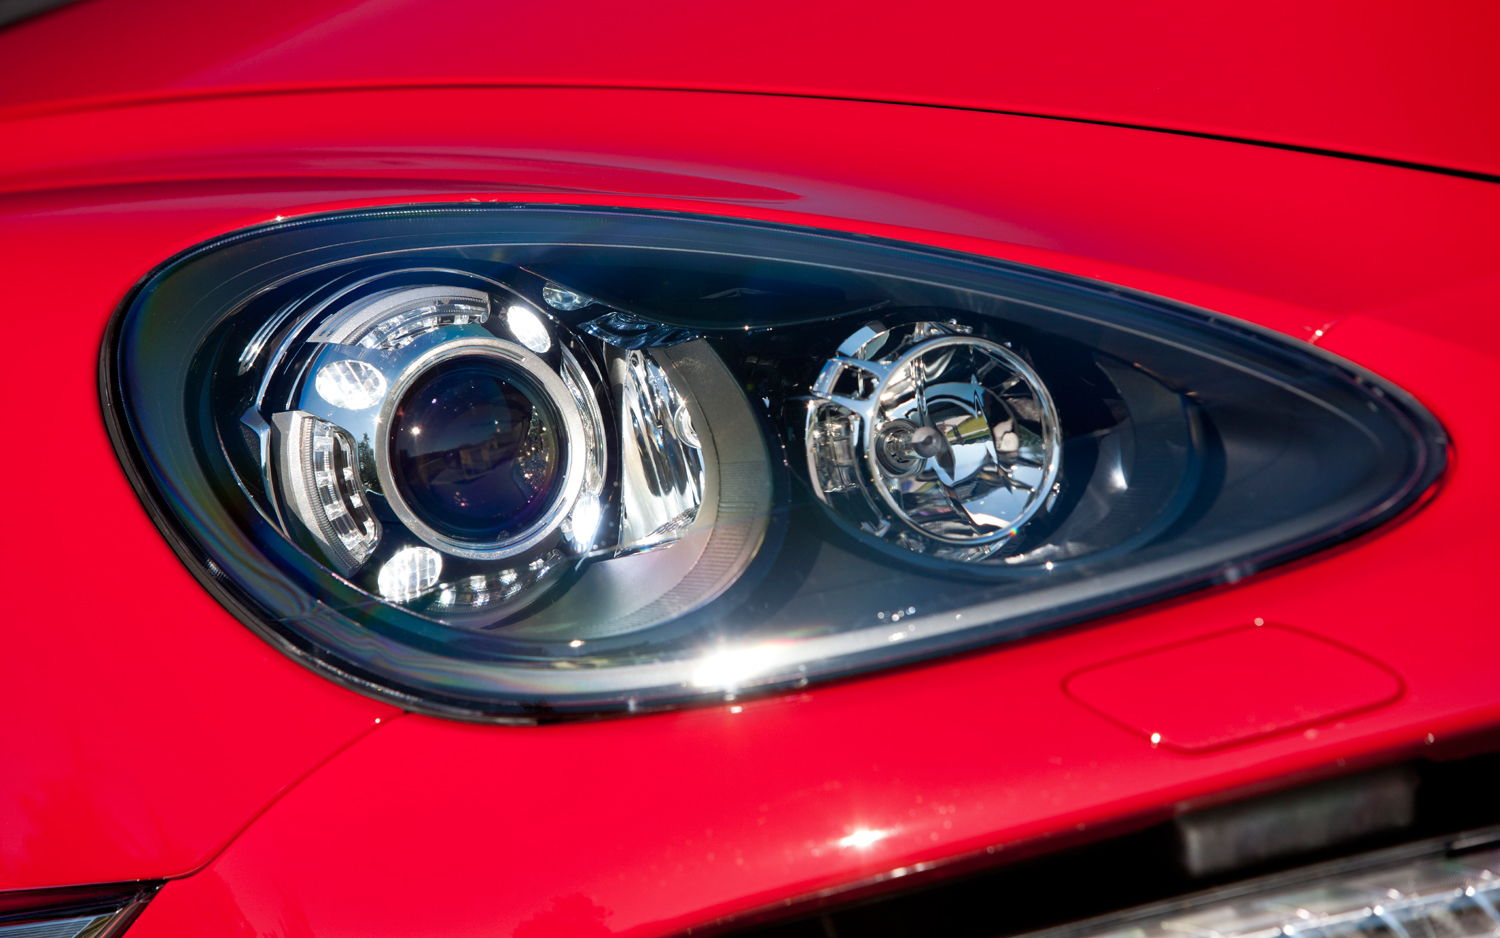 And this is the 958 1 headlamp